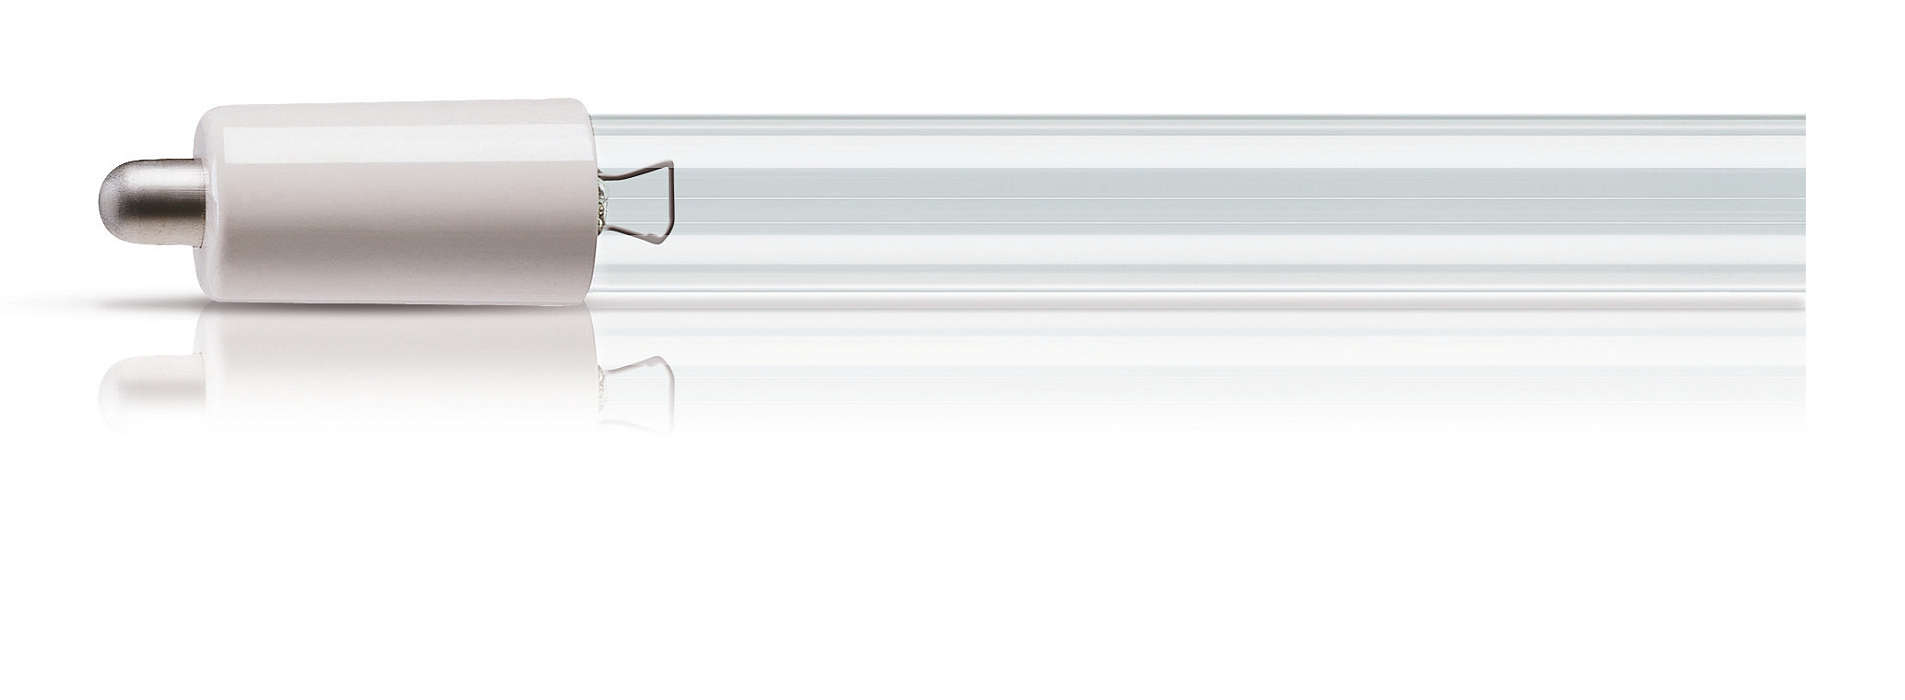 TUV T5 - Small diameter lamps for professional applications